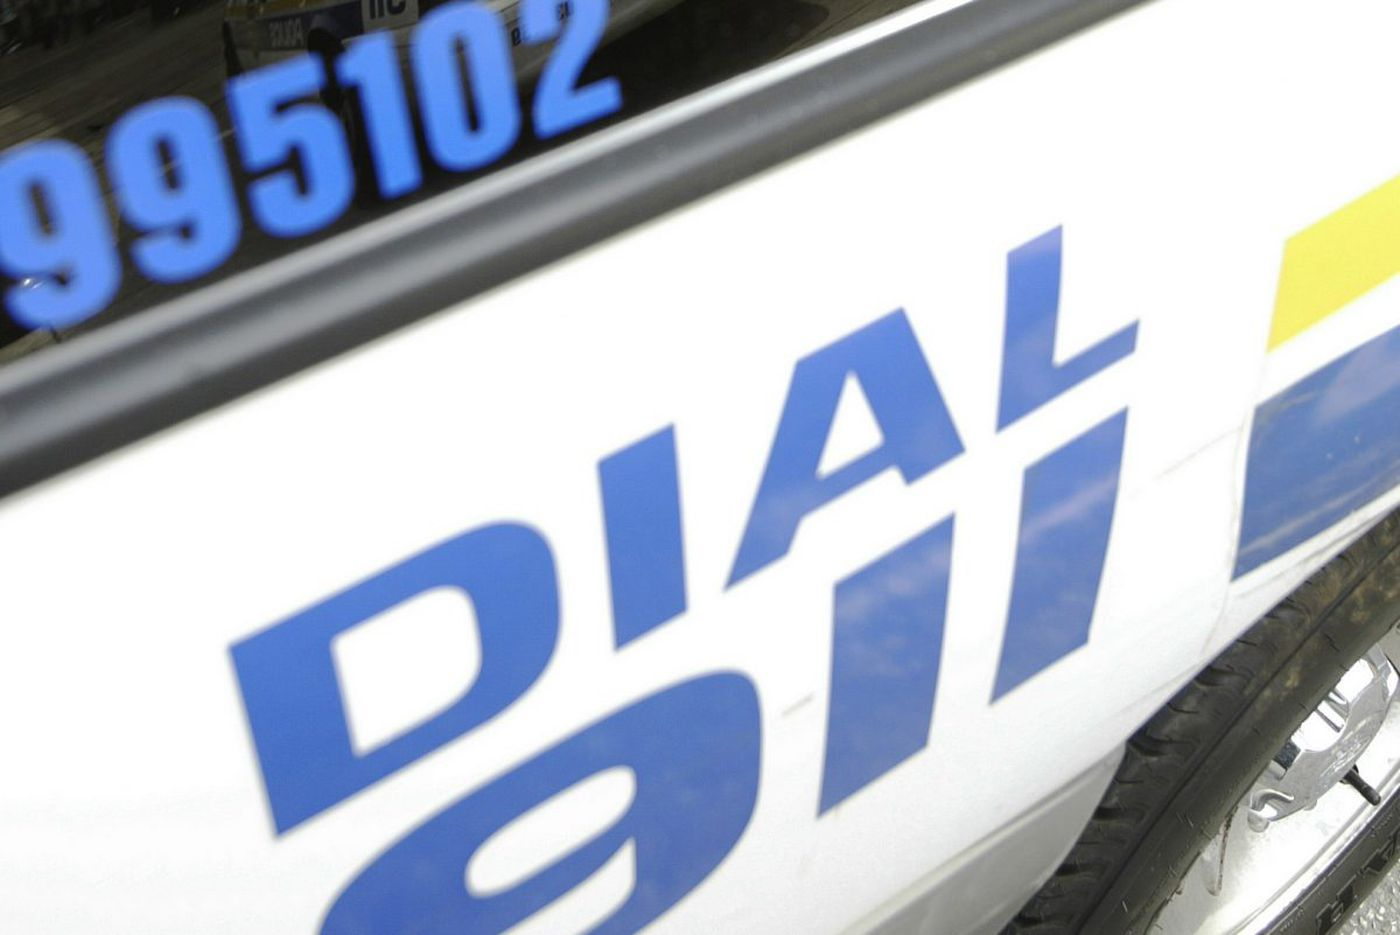 Philadelphia man in alleged kidnapping ID'd